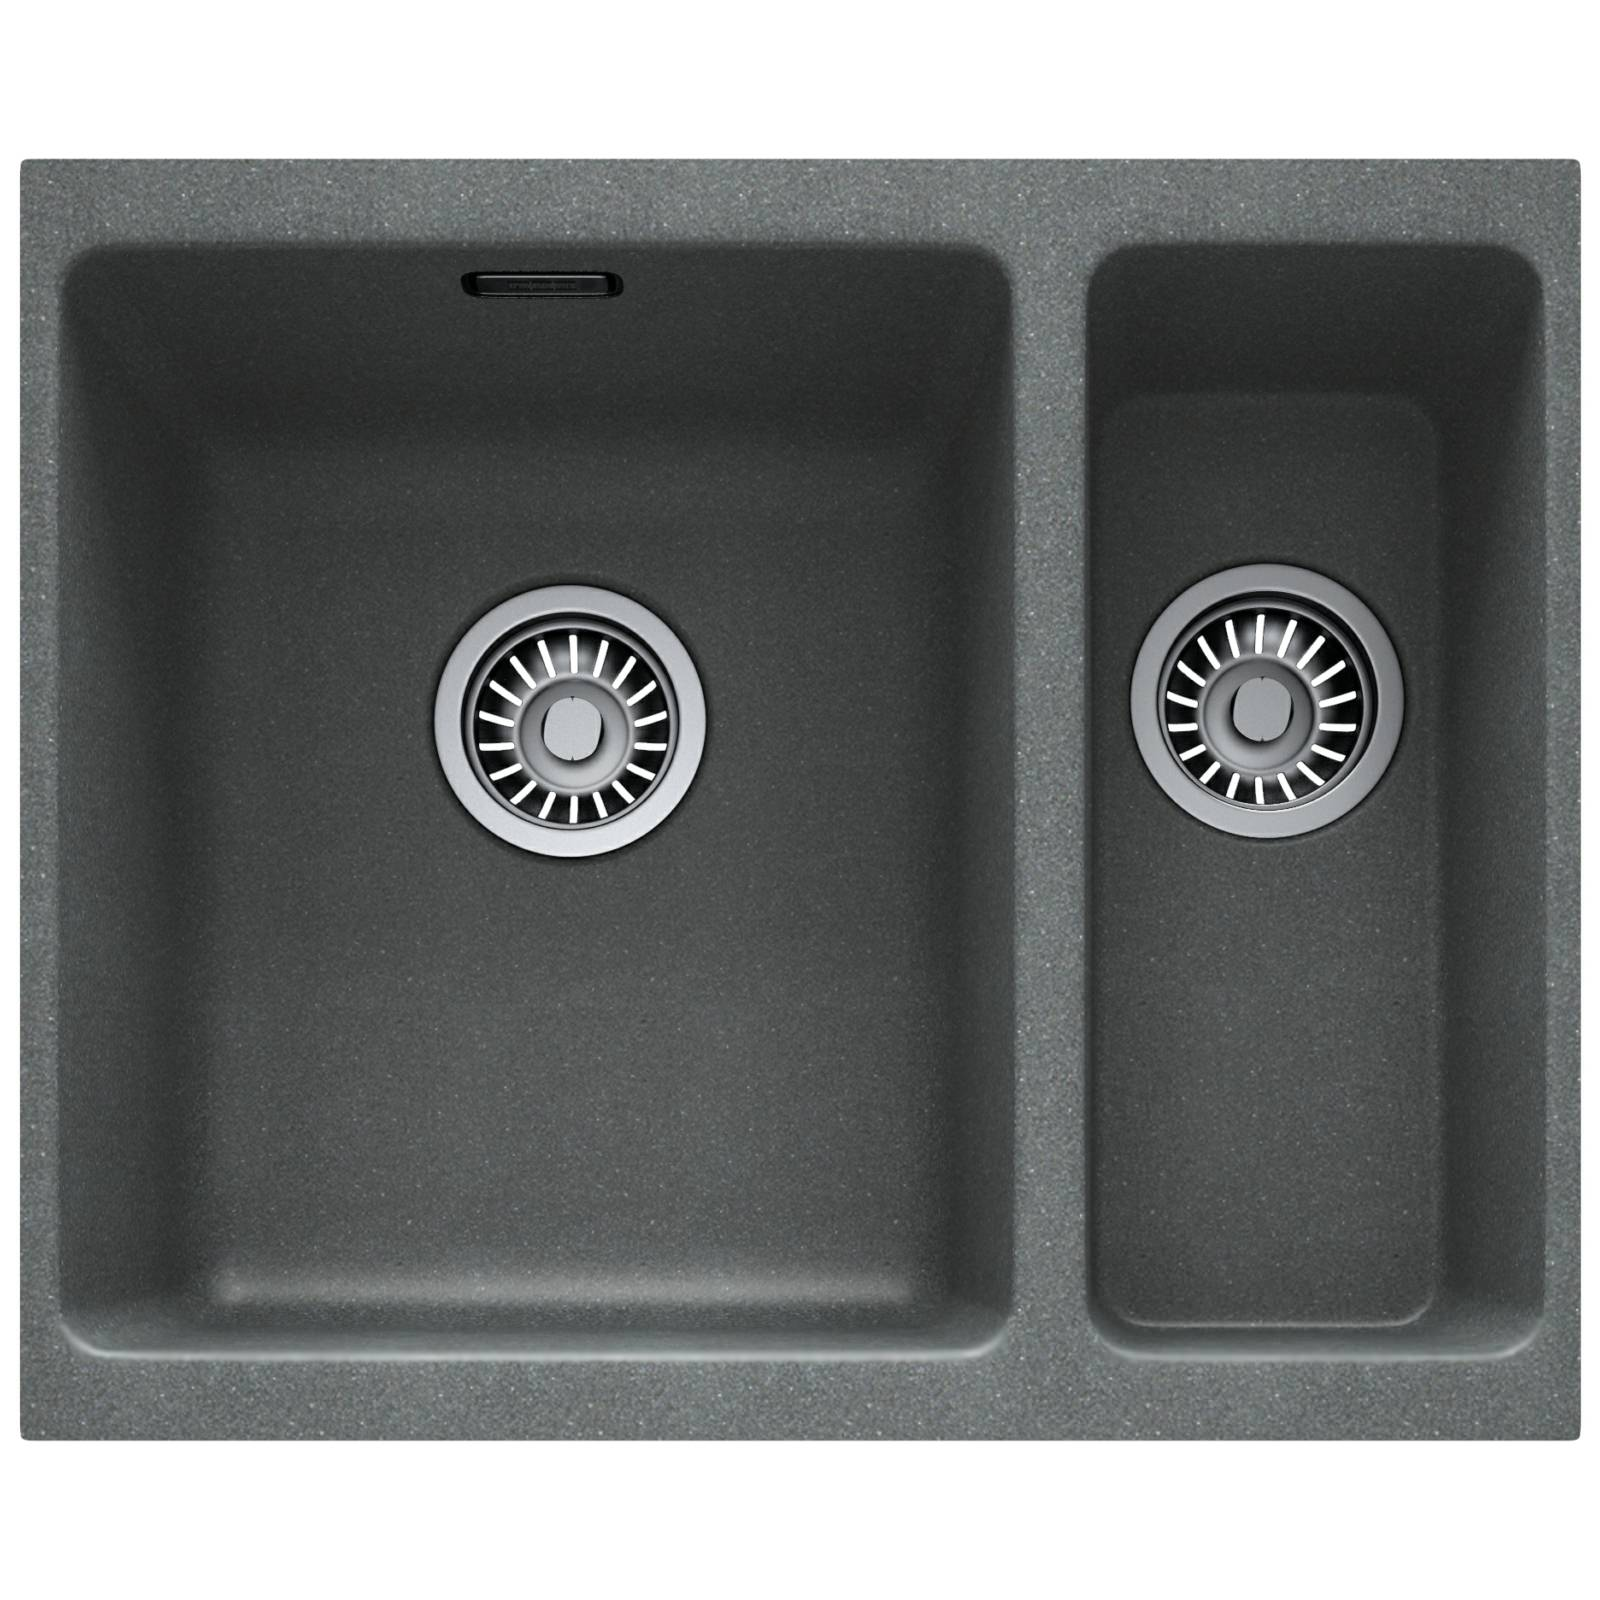 ... KBG 160 Fragranite Stone Grey 1.5 Bowl Undermount Sink 125.0435.862